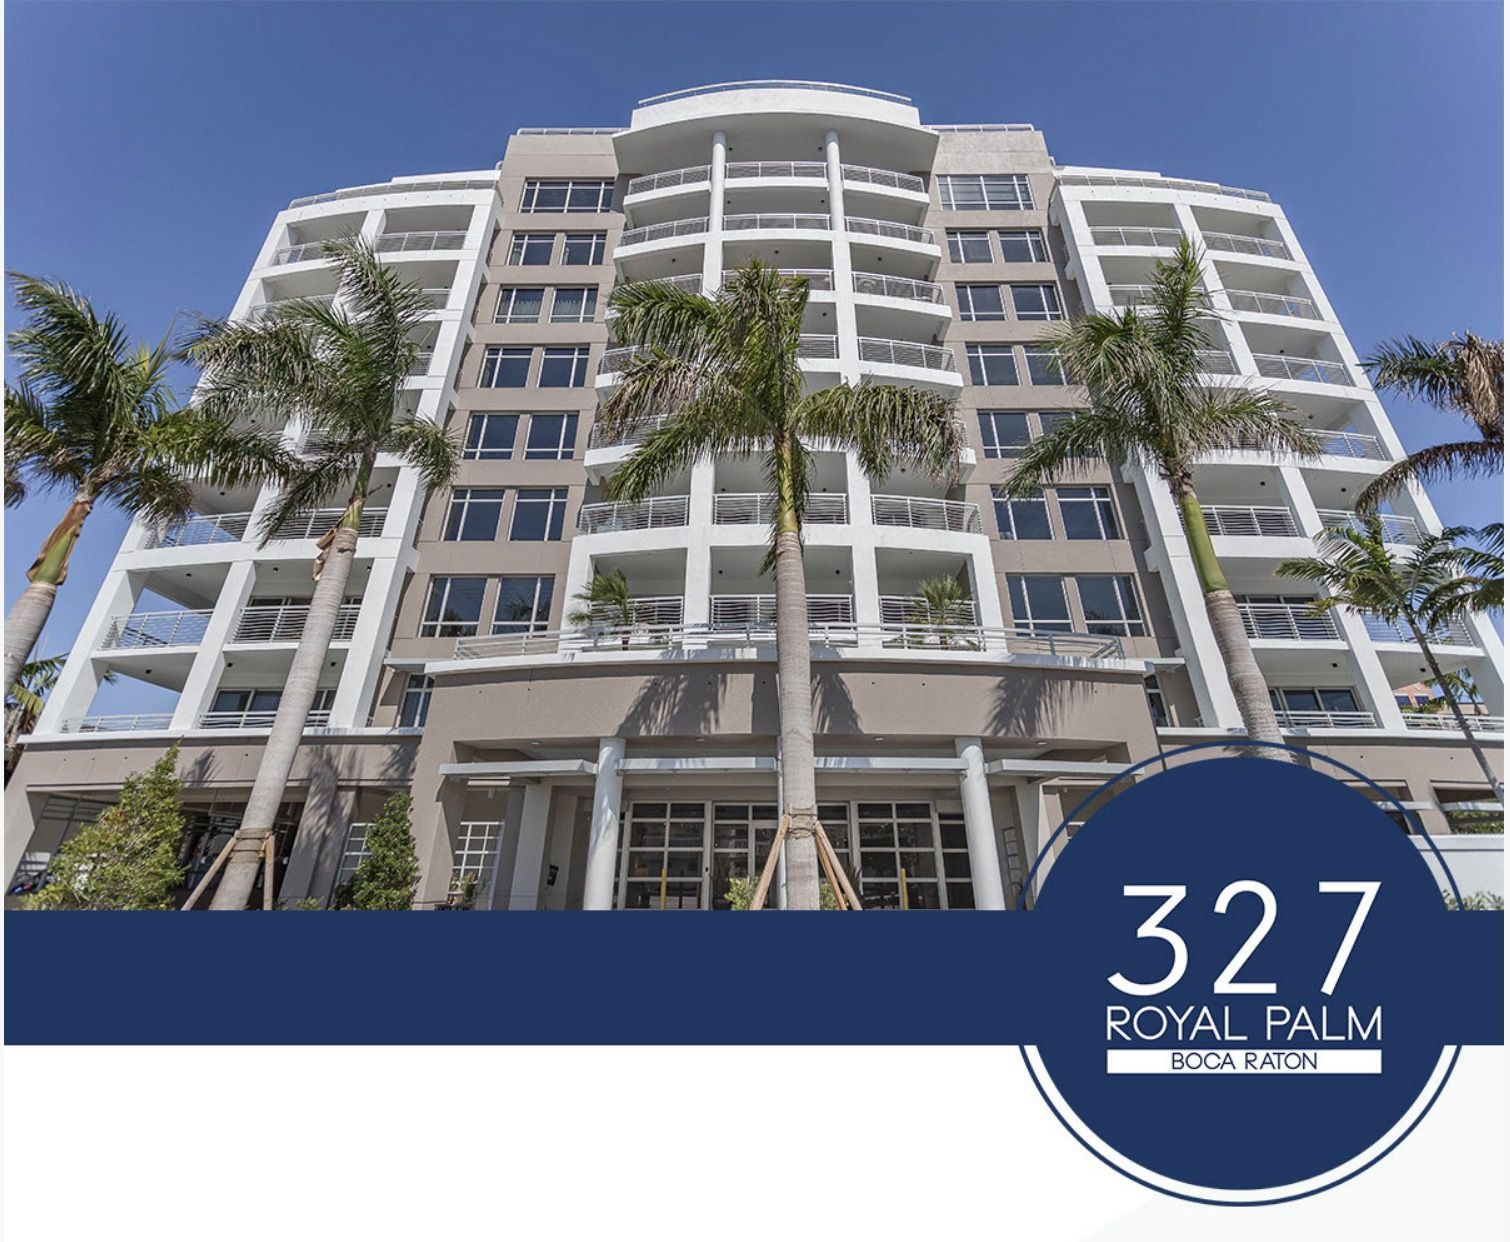 327 royal palm boca raton two bedrooms starting from